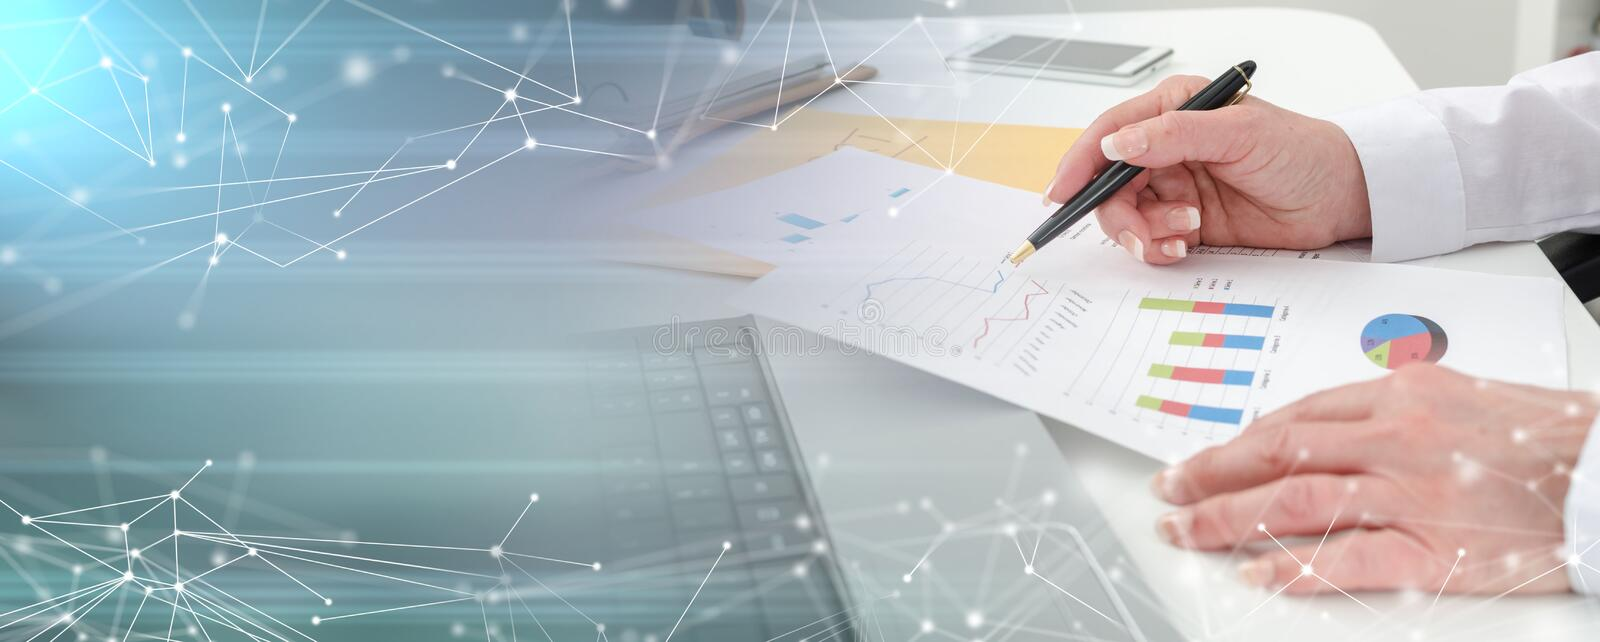 Businesswoman working on financial graphs; multiple exposure royalty free stock photography